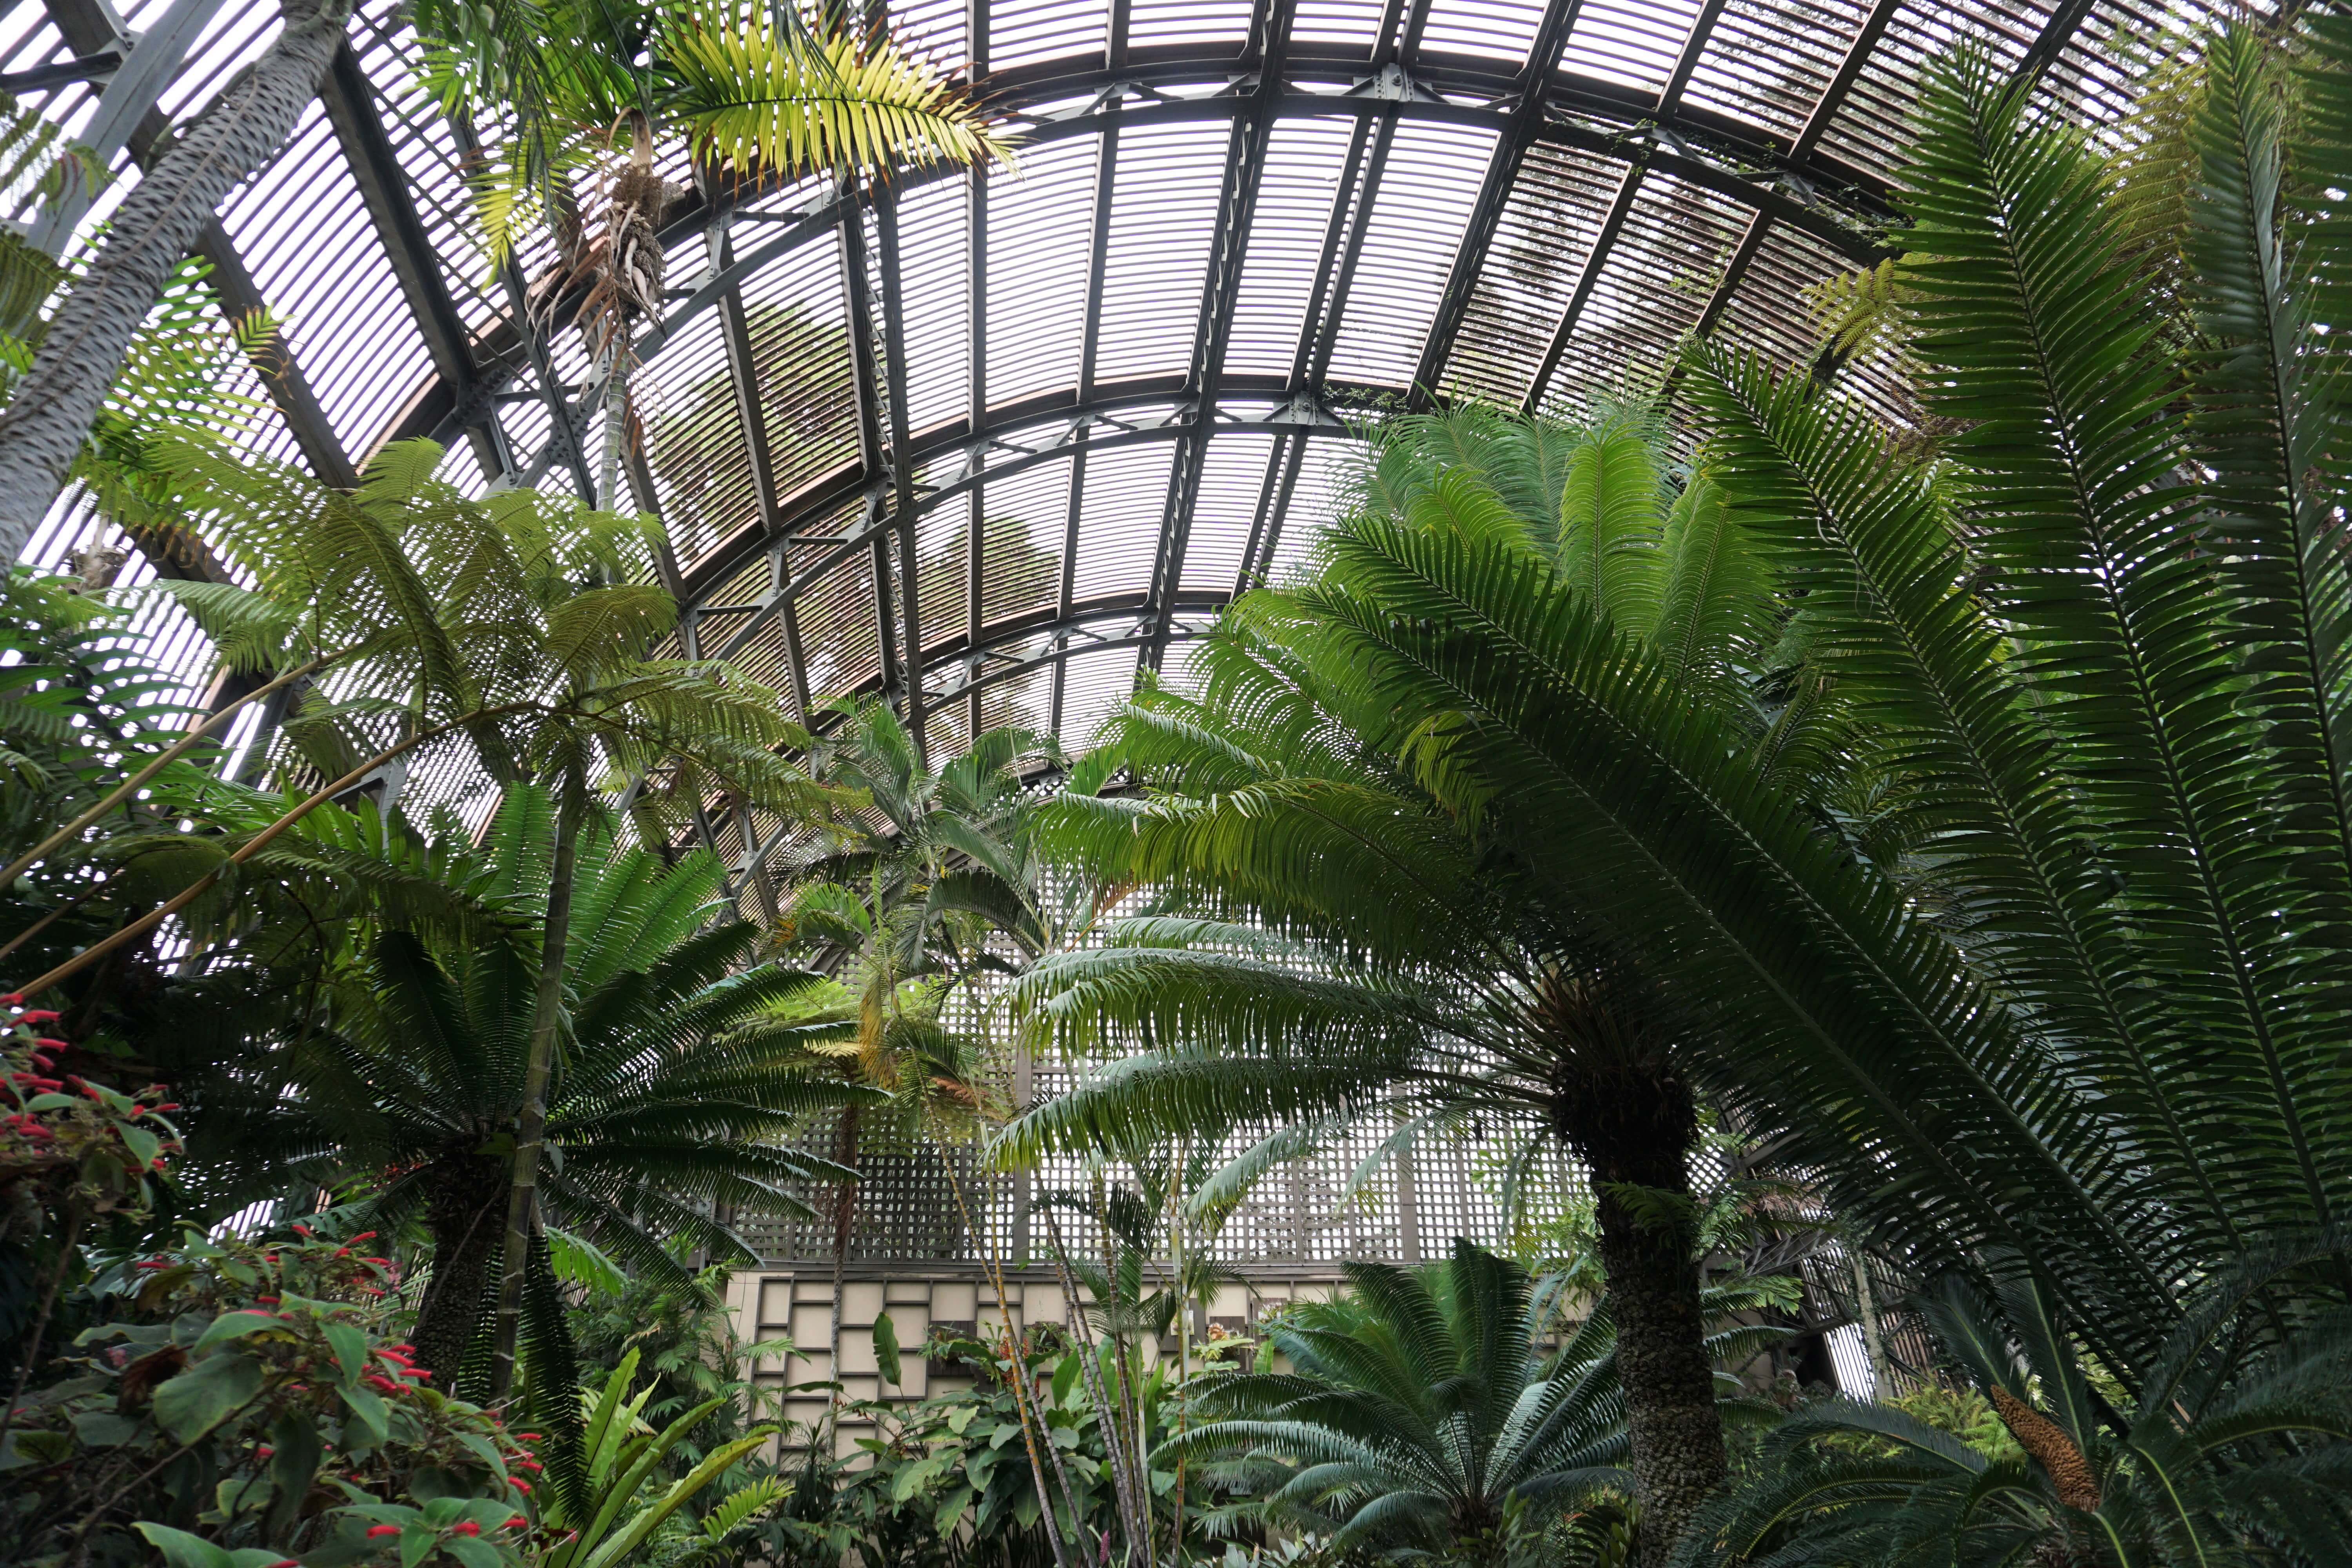 Interior view of the Botanical Building in Balboa Park, San Diego